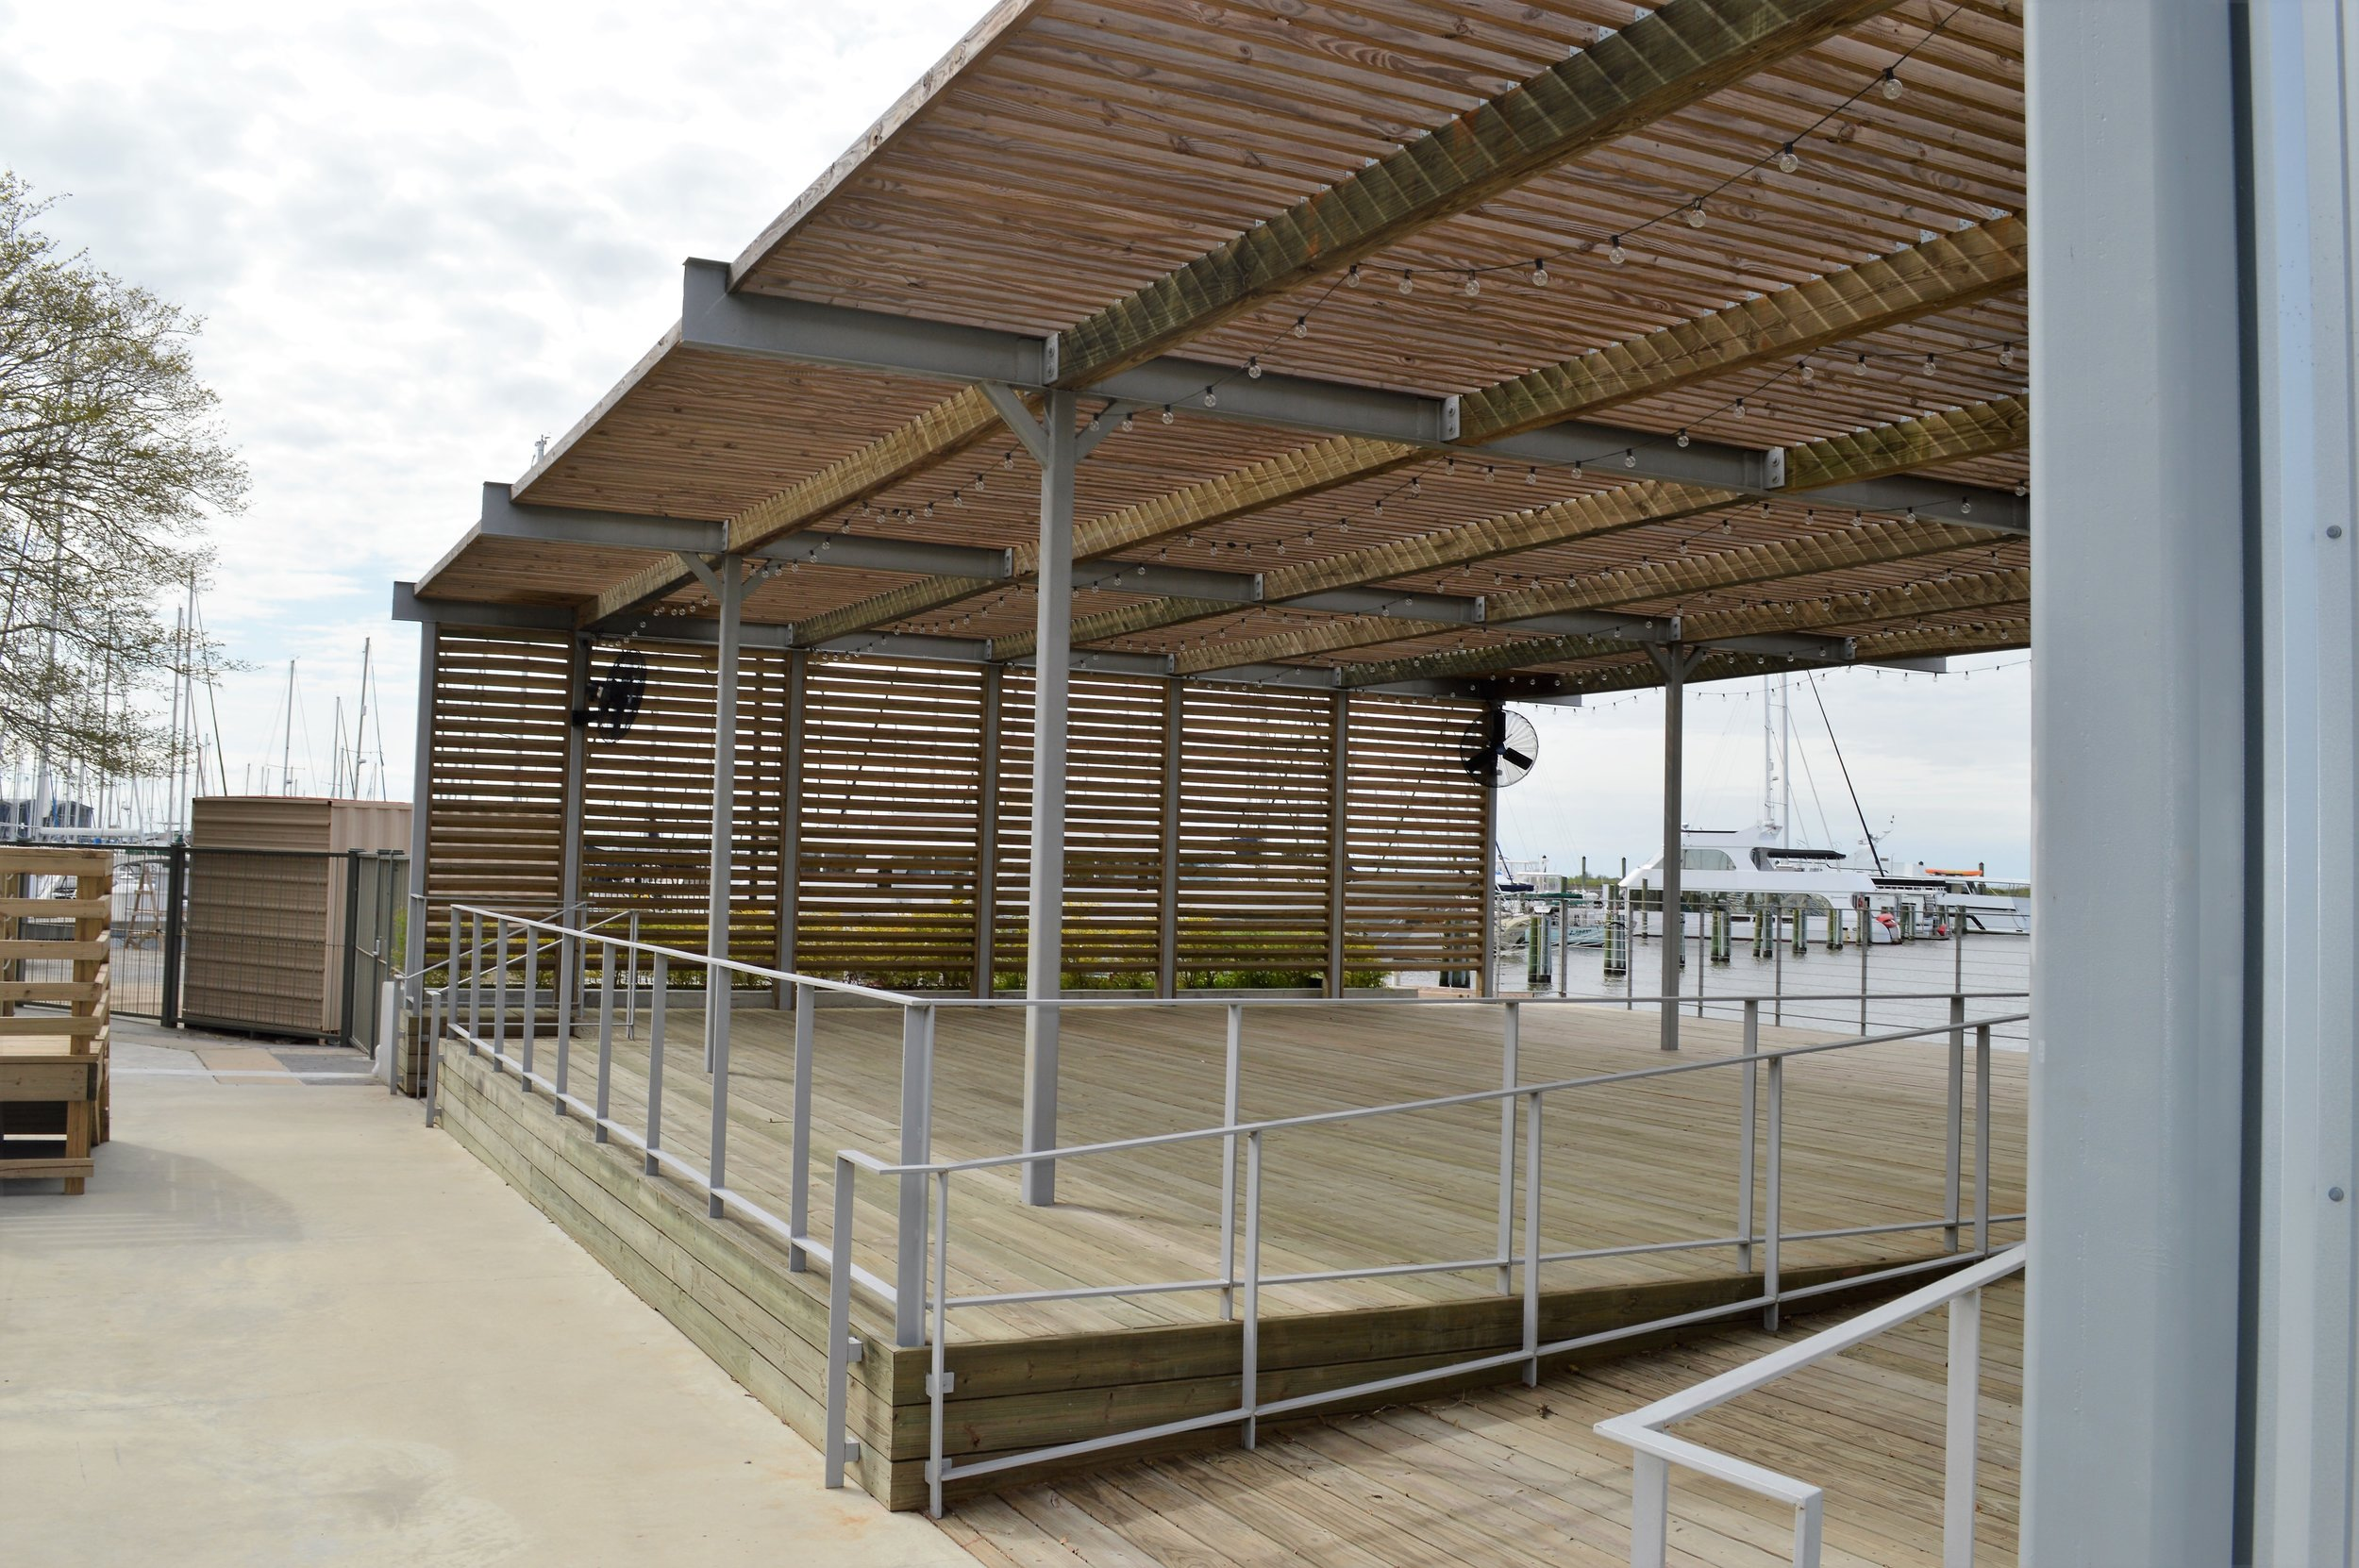 The Harbour Dock is available for rental. Cocktail parties, receptions, or a private parties. Wow your guests with the amazing view and set-up.